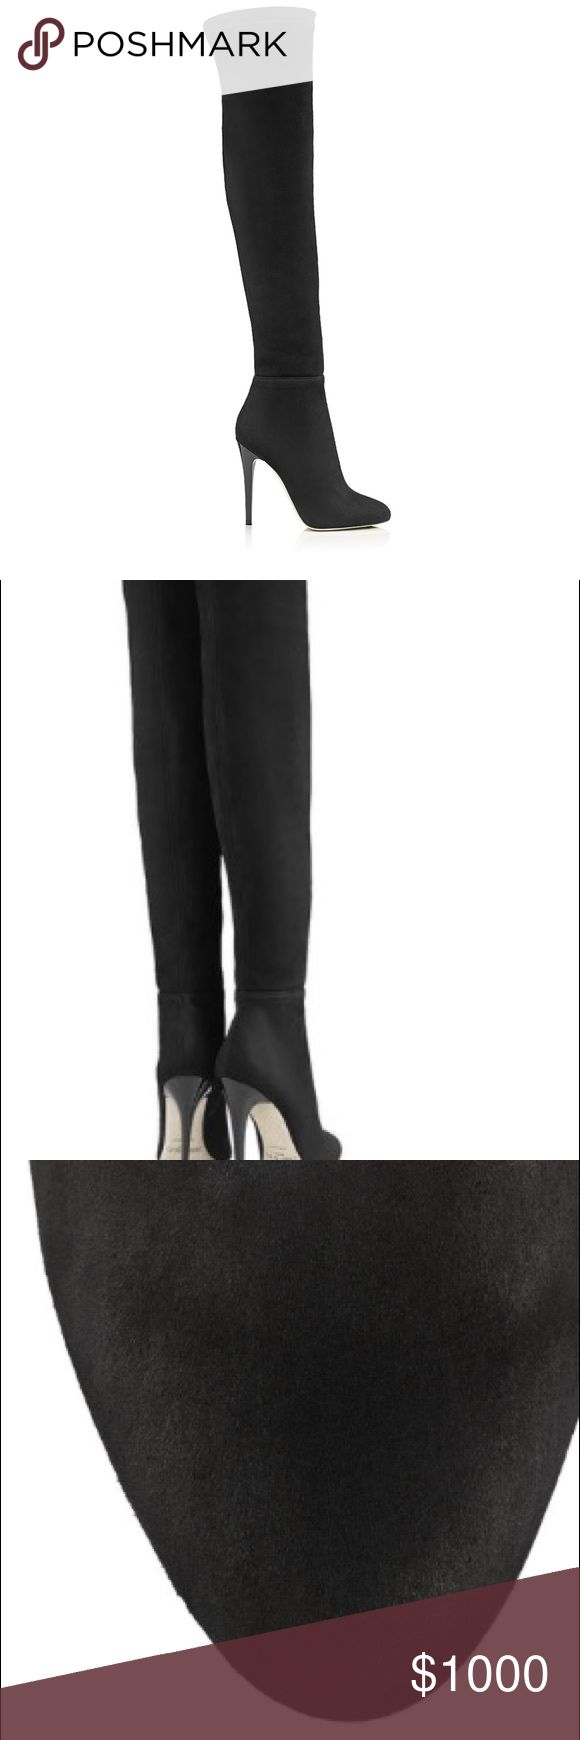 JIMMY CHOO Suede Over The Knee Boots ⚠️WORN ONCE⚠️These tight over the knee stretch boots are the epitome of opulence and simplicity. The clean, streamlined upper makes these an ideal option to transition through the day, whilst the sexy silhouette will give you an added boost of confidence. They're black suede  Heel measures 4.3 inches and they are in good condition and the price is negotiable, feel free to make an offer (they are still for sale on the Jimmy Choo website for $1,795.00)…